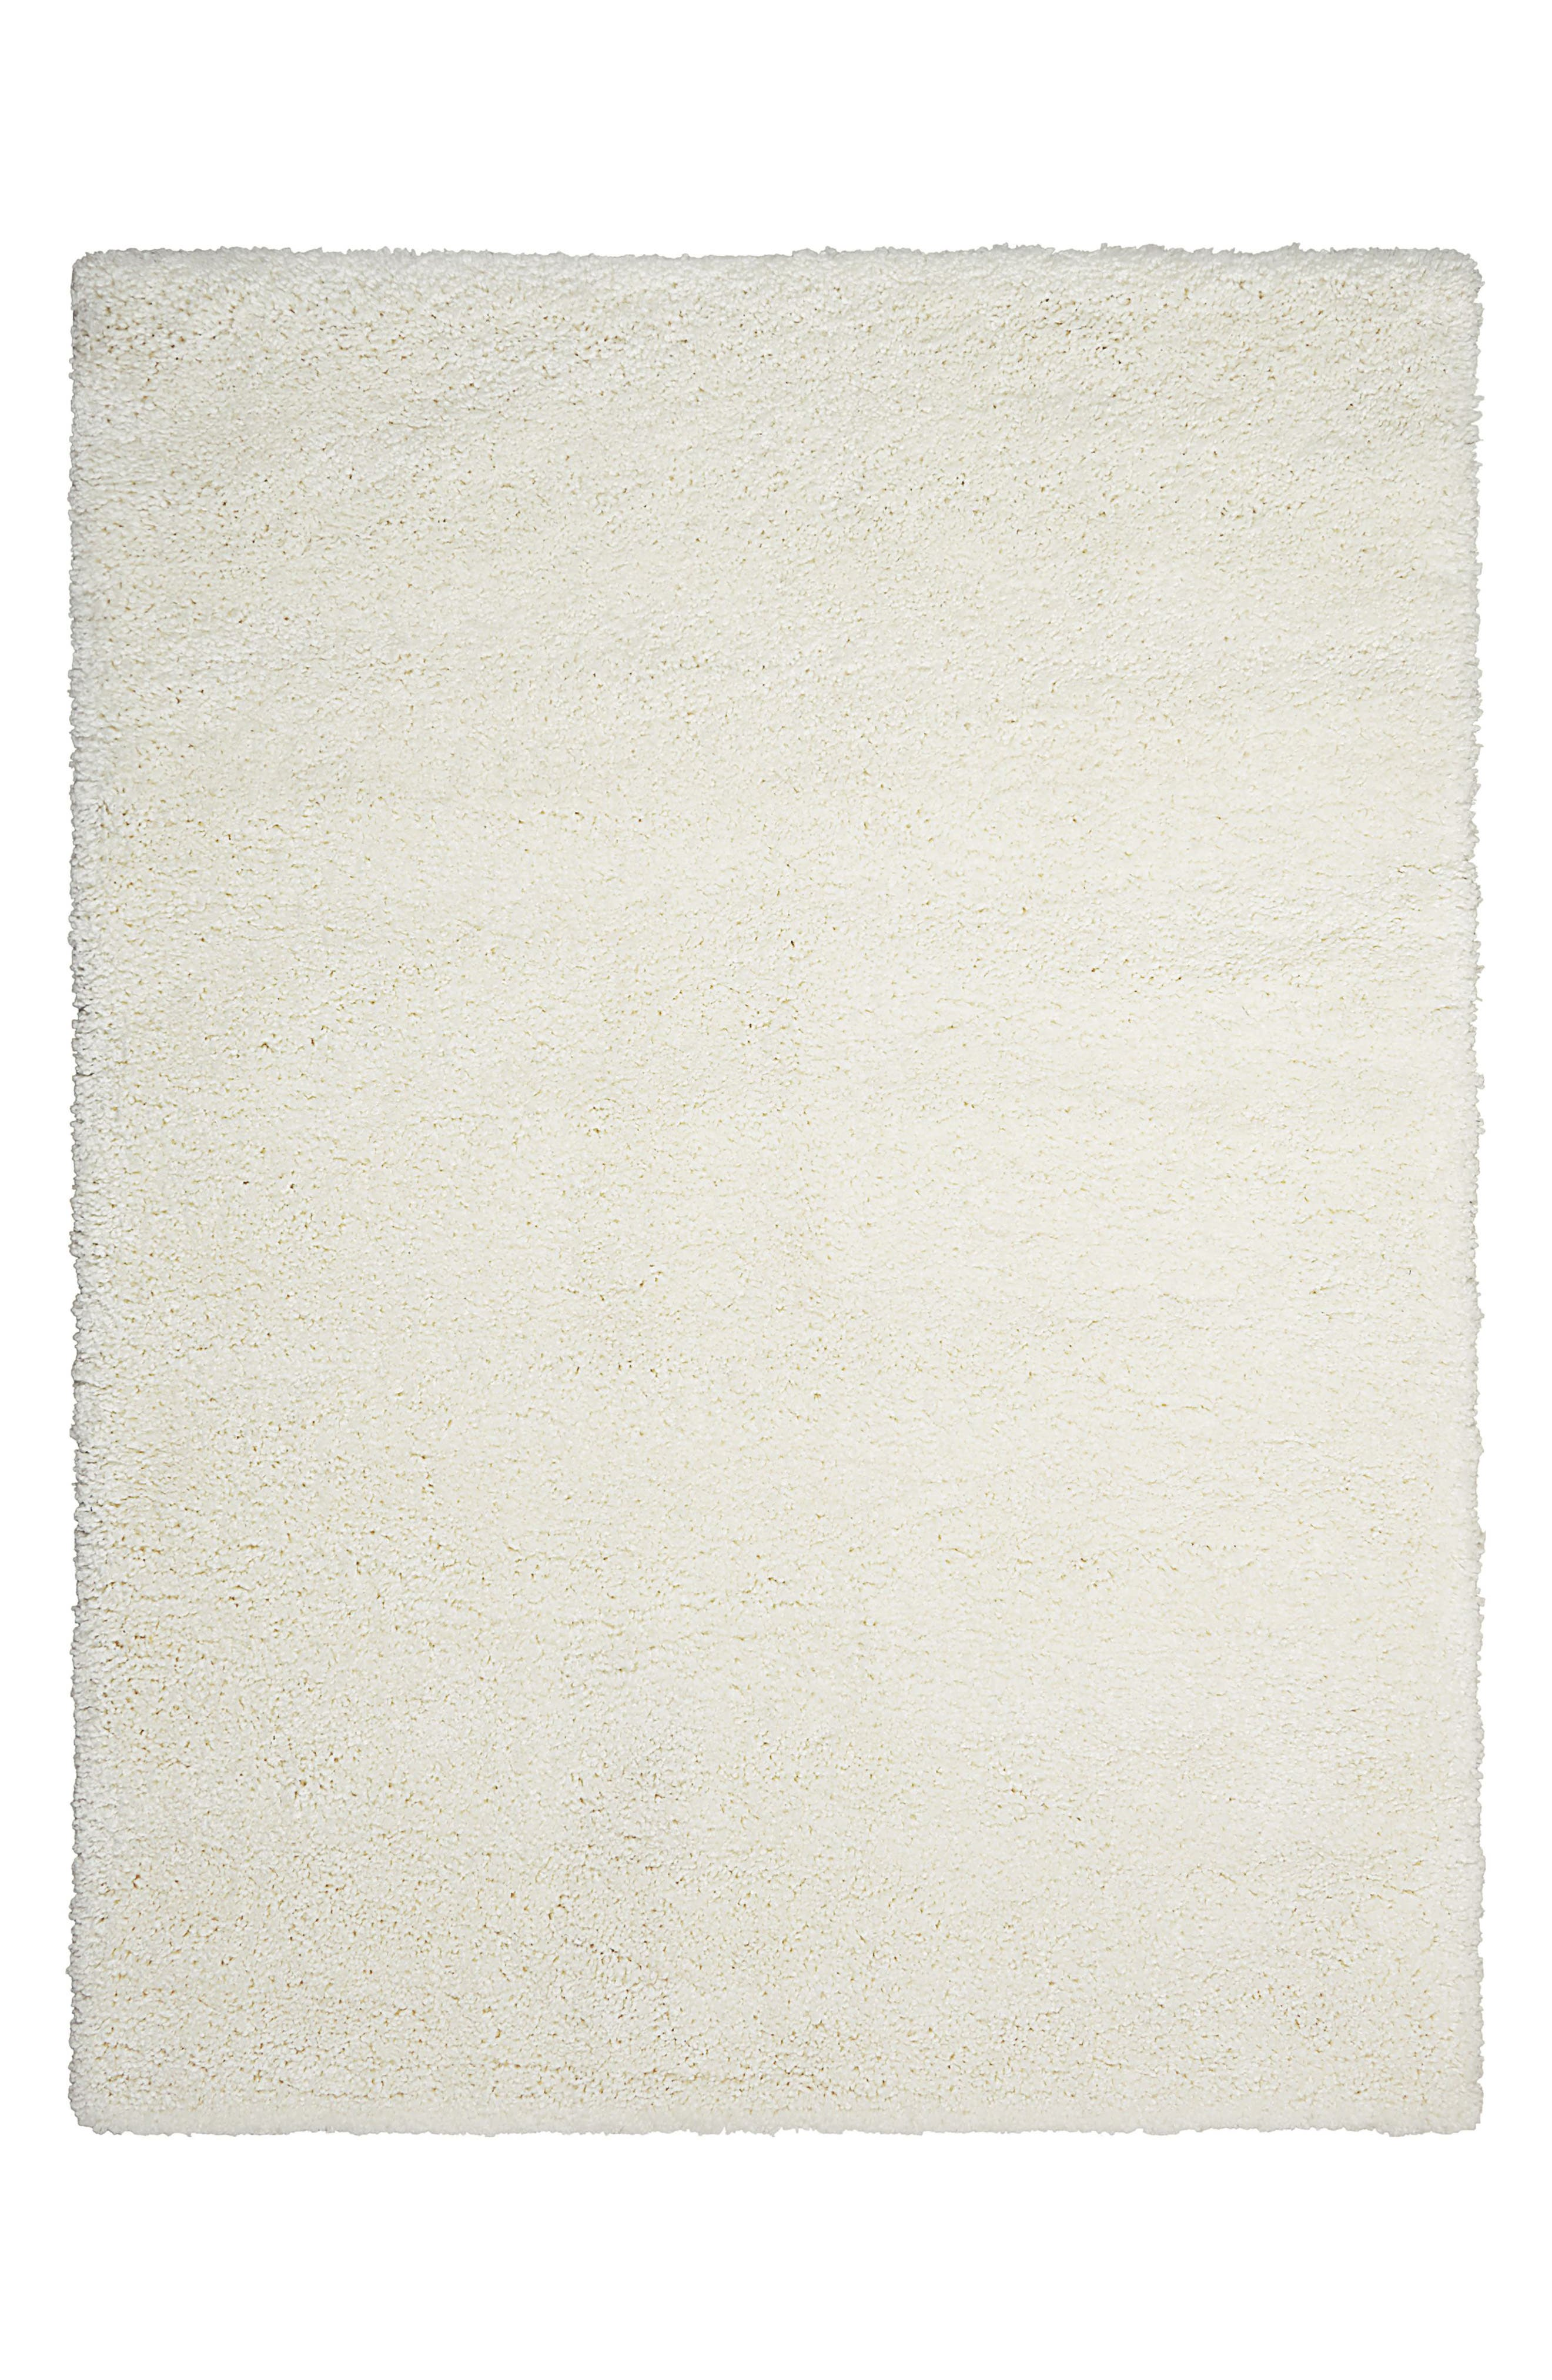 Alternate Image 1 Selected - Calvin Klein Riad Collection Shag Pile Area Rug